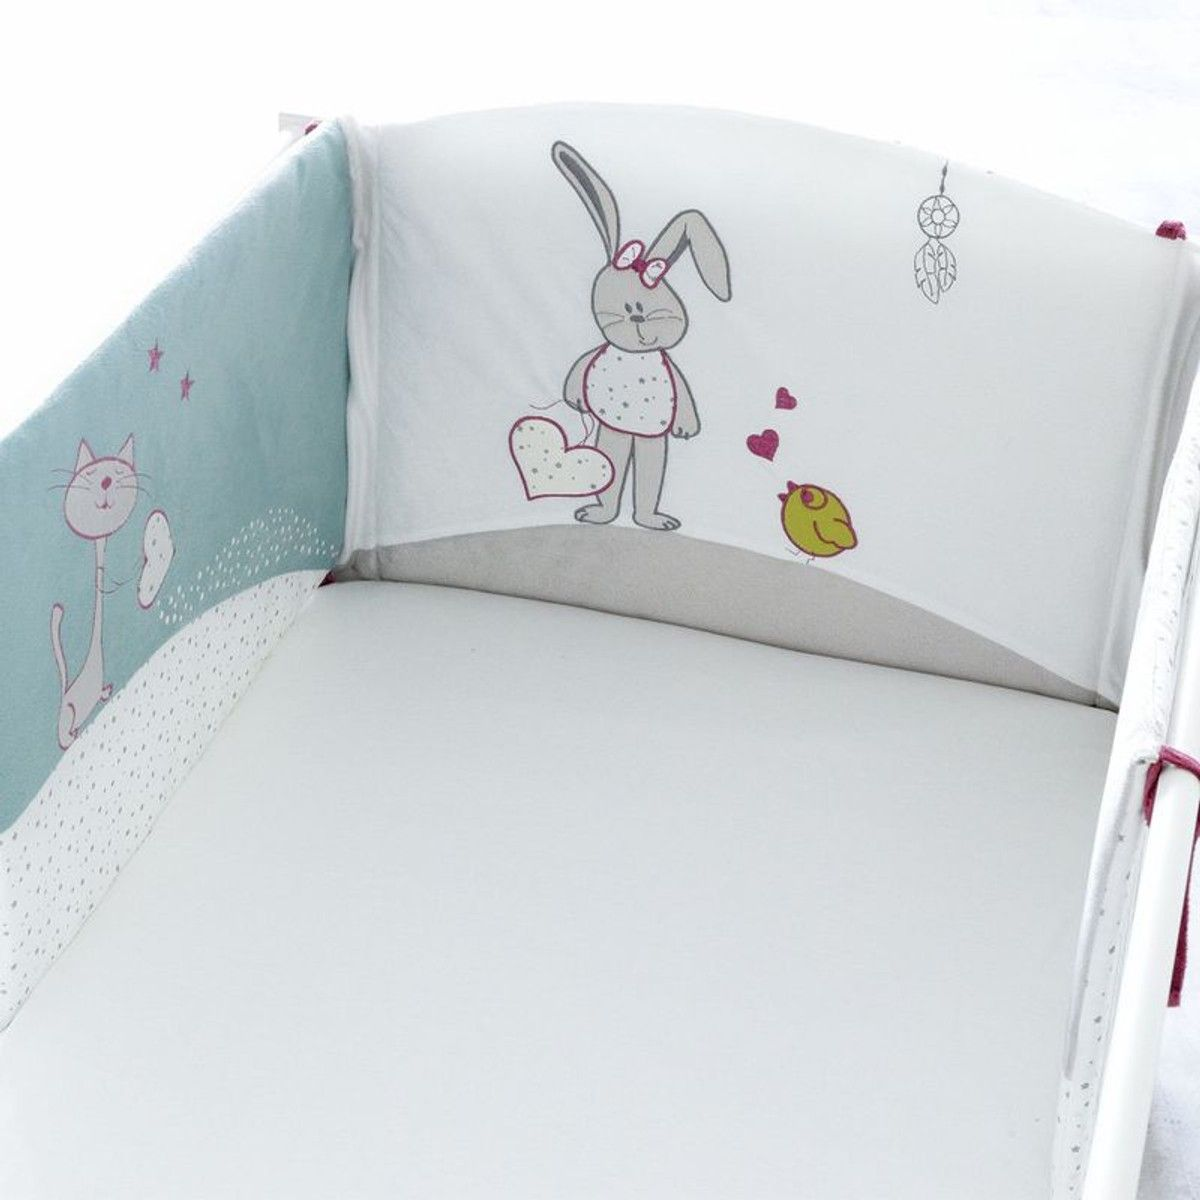 Tour De Lit Fille Accroch Coeur Products Tour De Lit Fille Tour De Lit Et Lit